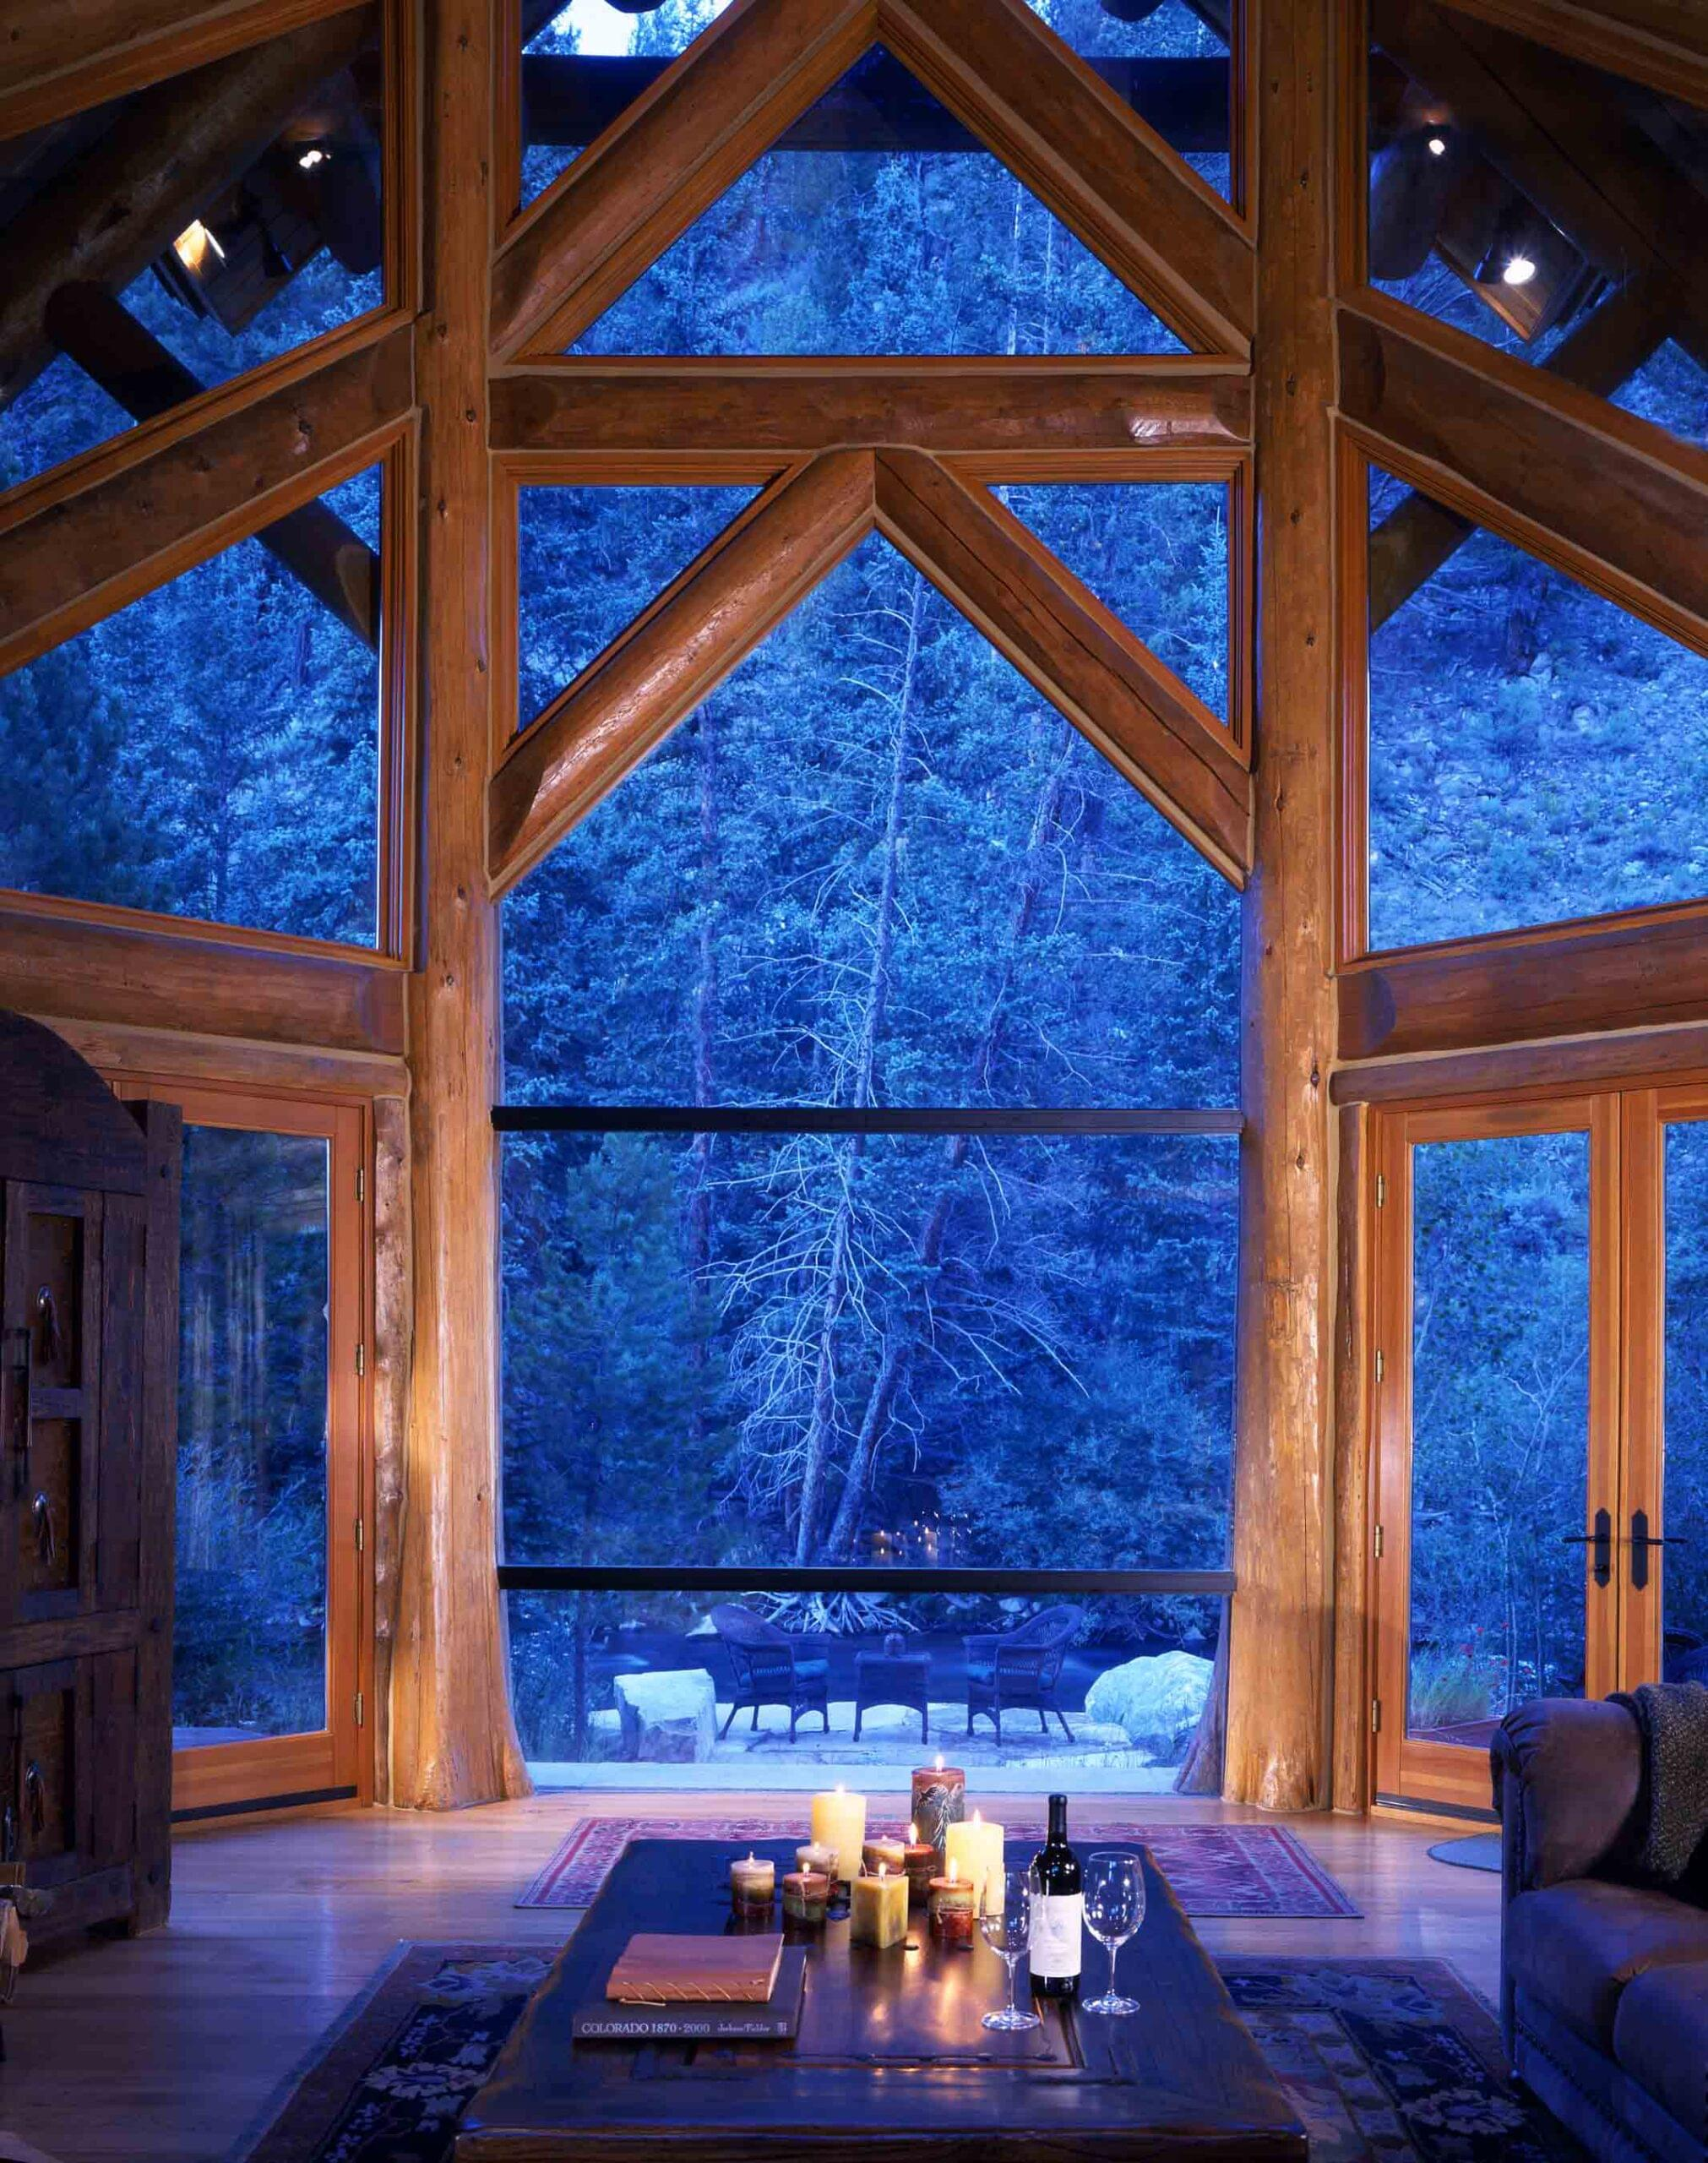 Trimless log cabin window invites beauty